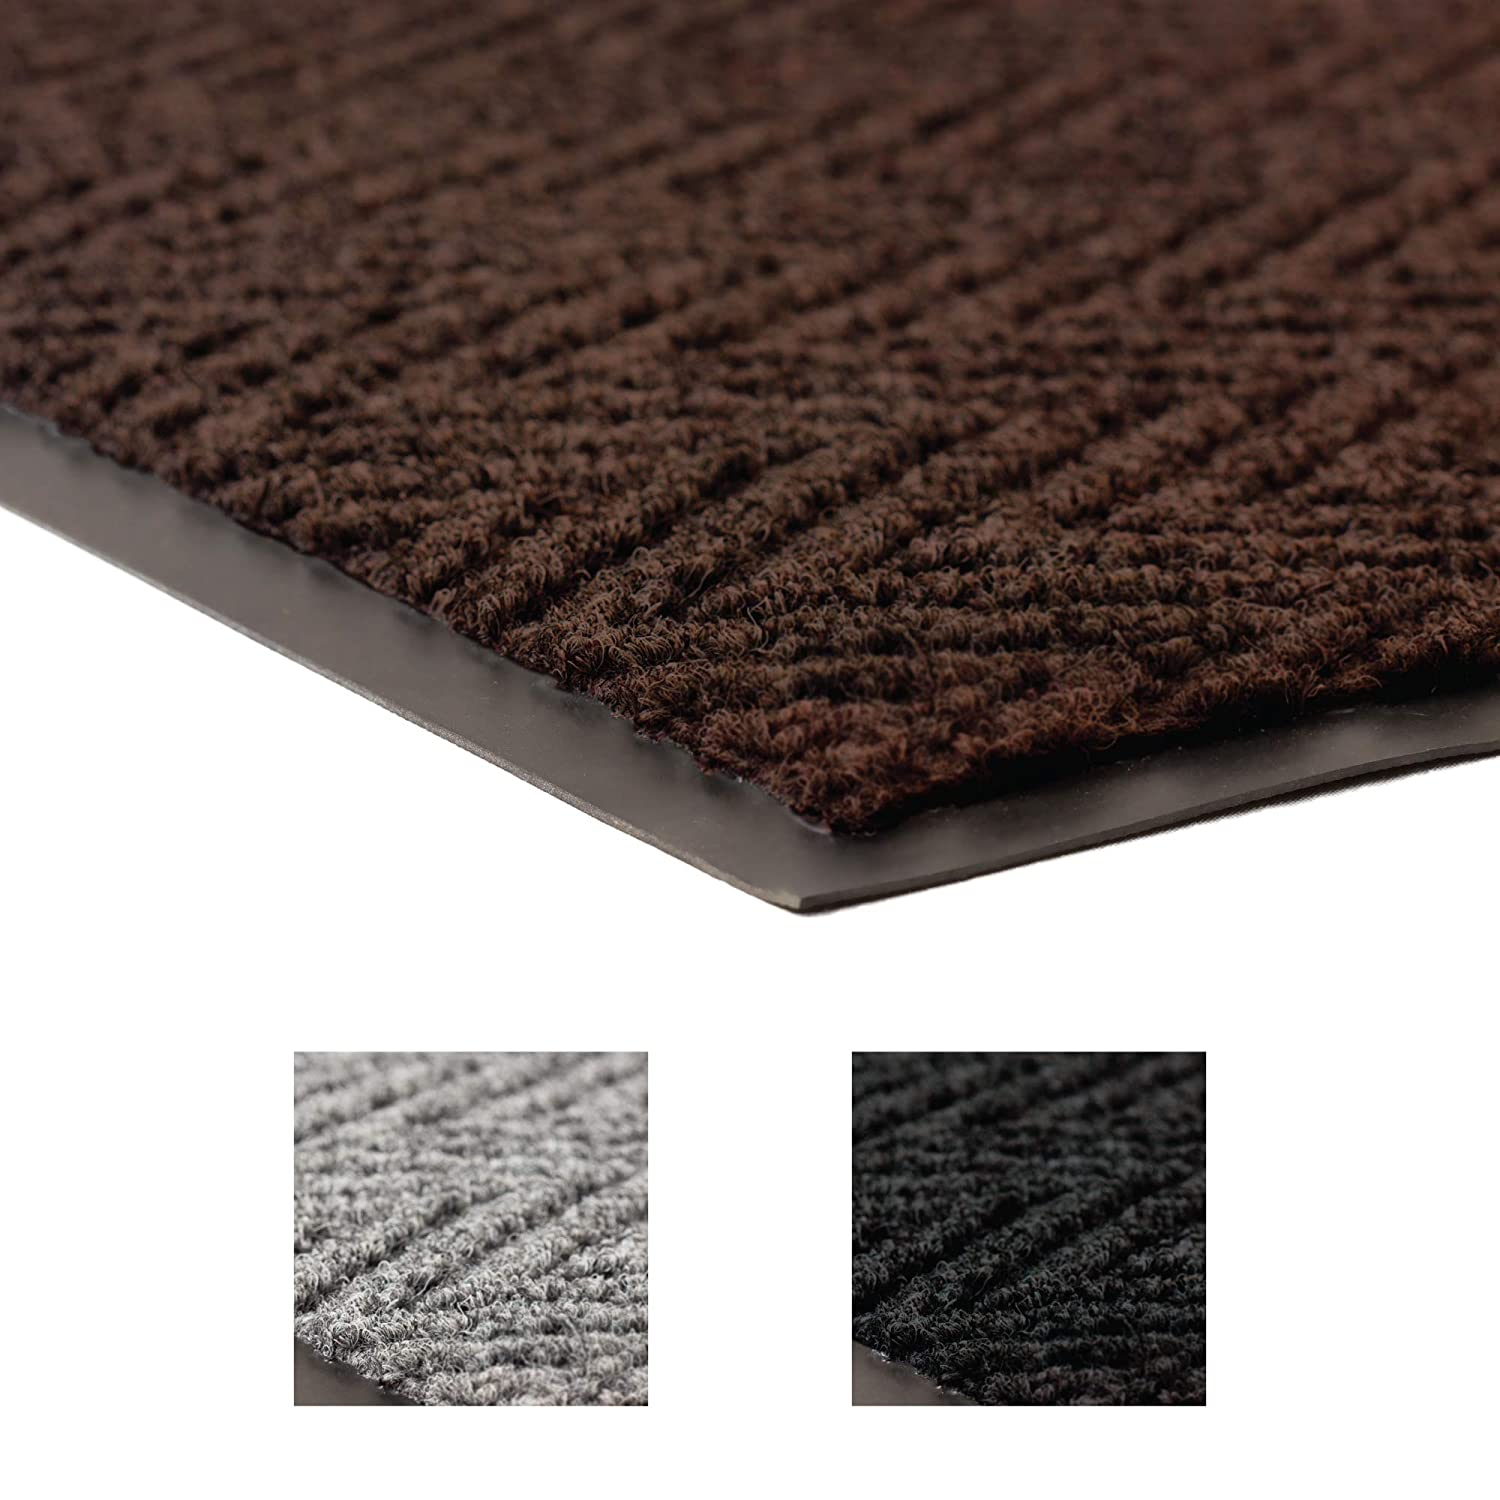 Notrax 118 Arrow Trax Entrance Mat, for Home or Office, 3' X 10' Brown